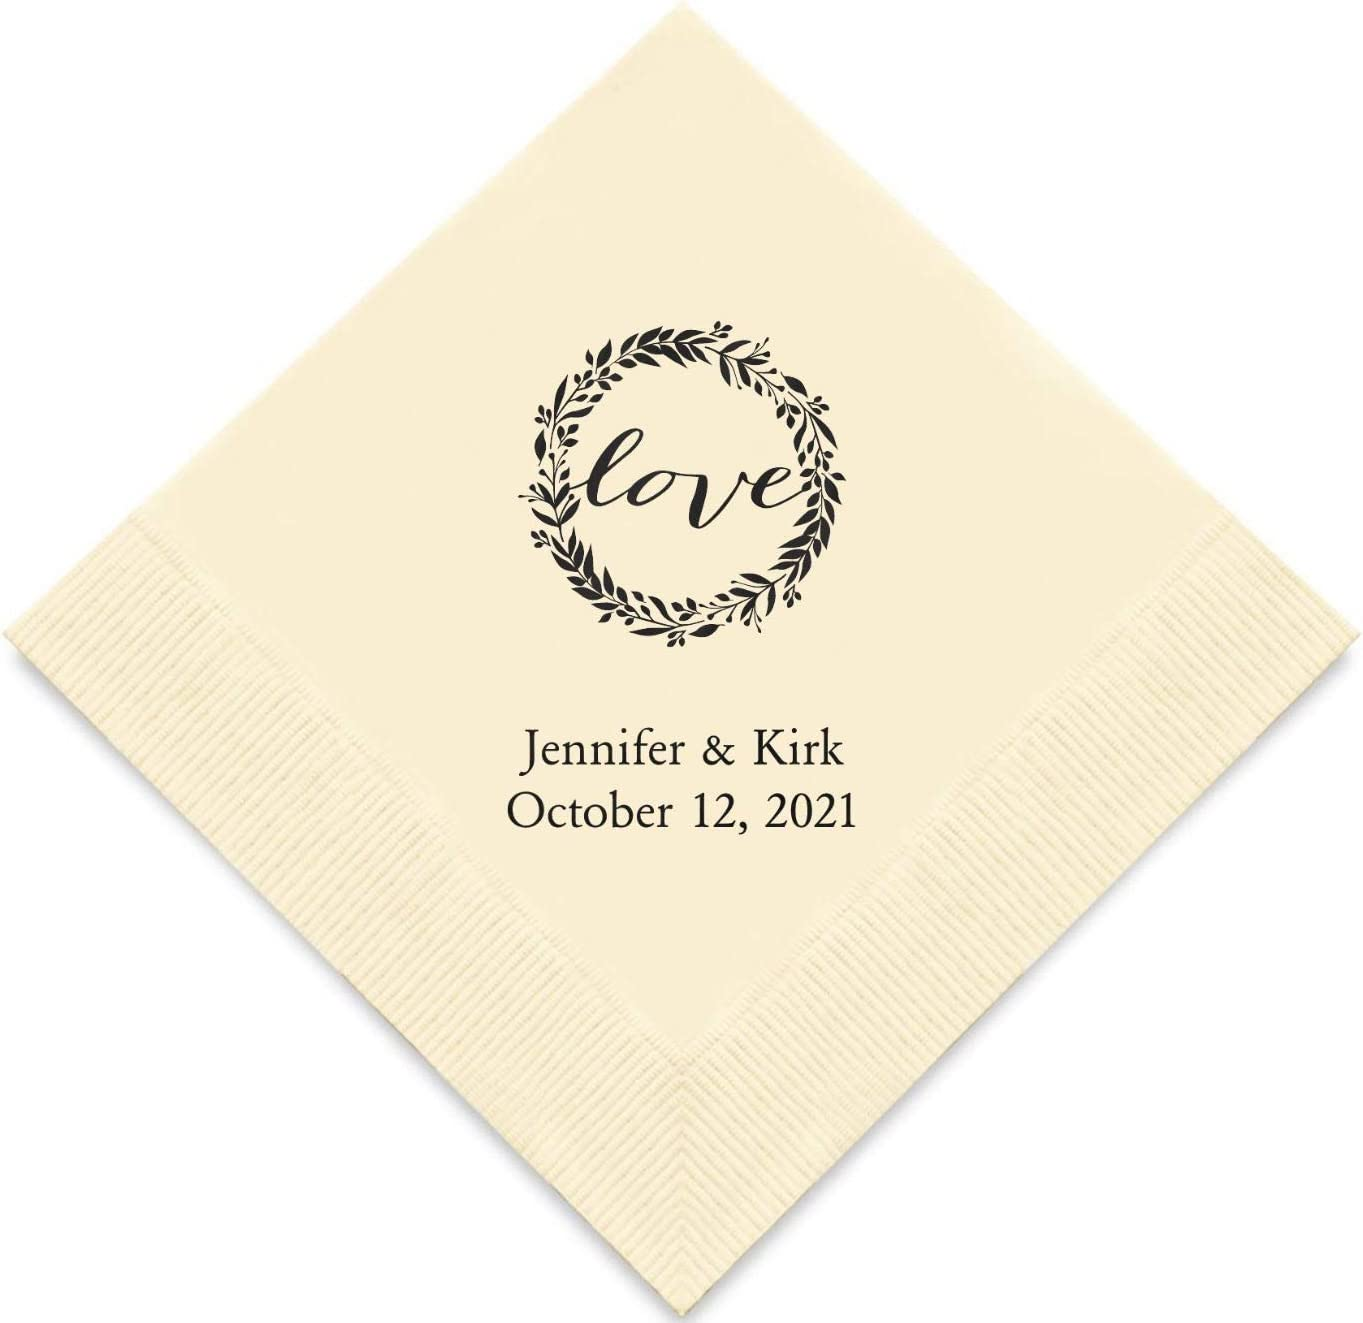 Weddingstar Personalized Printed Paper Napkins 3-Ply 50 Pack - Luncheon Ivory